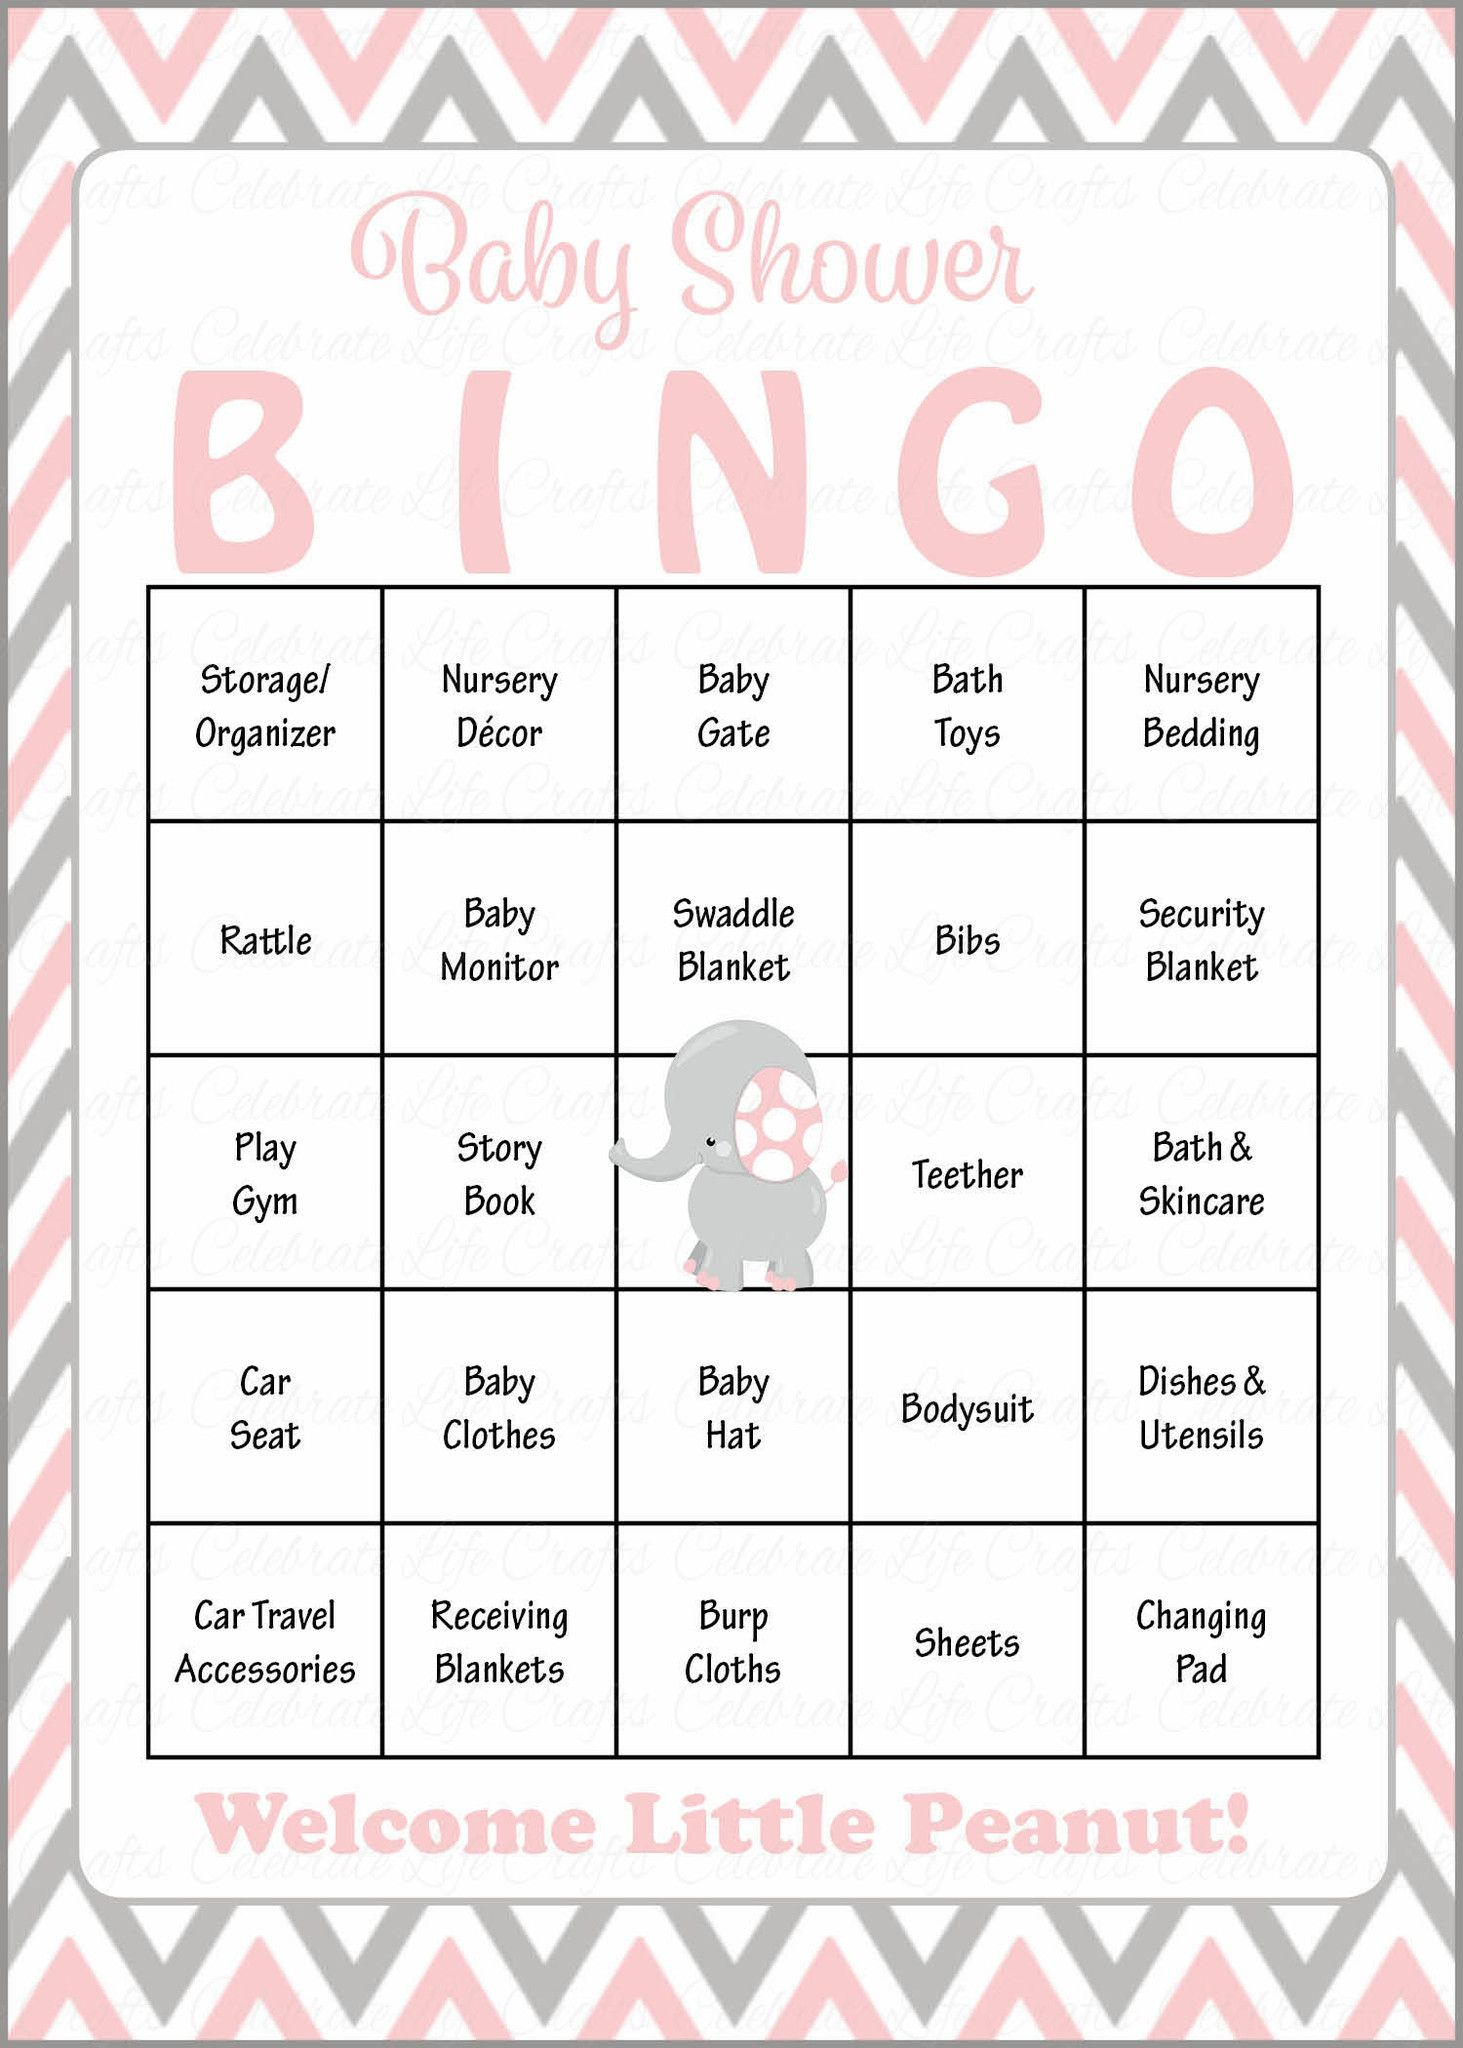 Elephant Baby Bingo Cards - Printable Download - Prefilled - Baby - 50 Free Printable Baby Bingo Cards